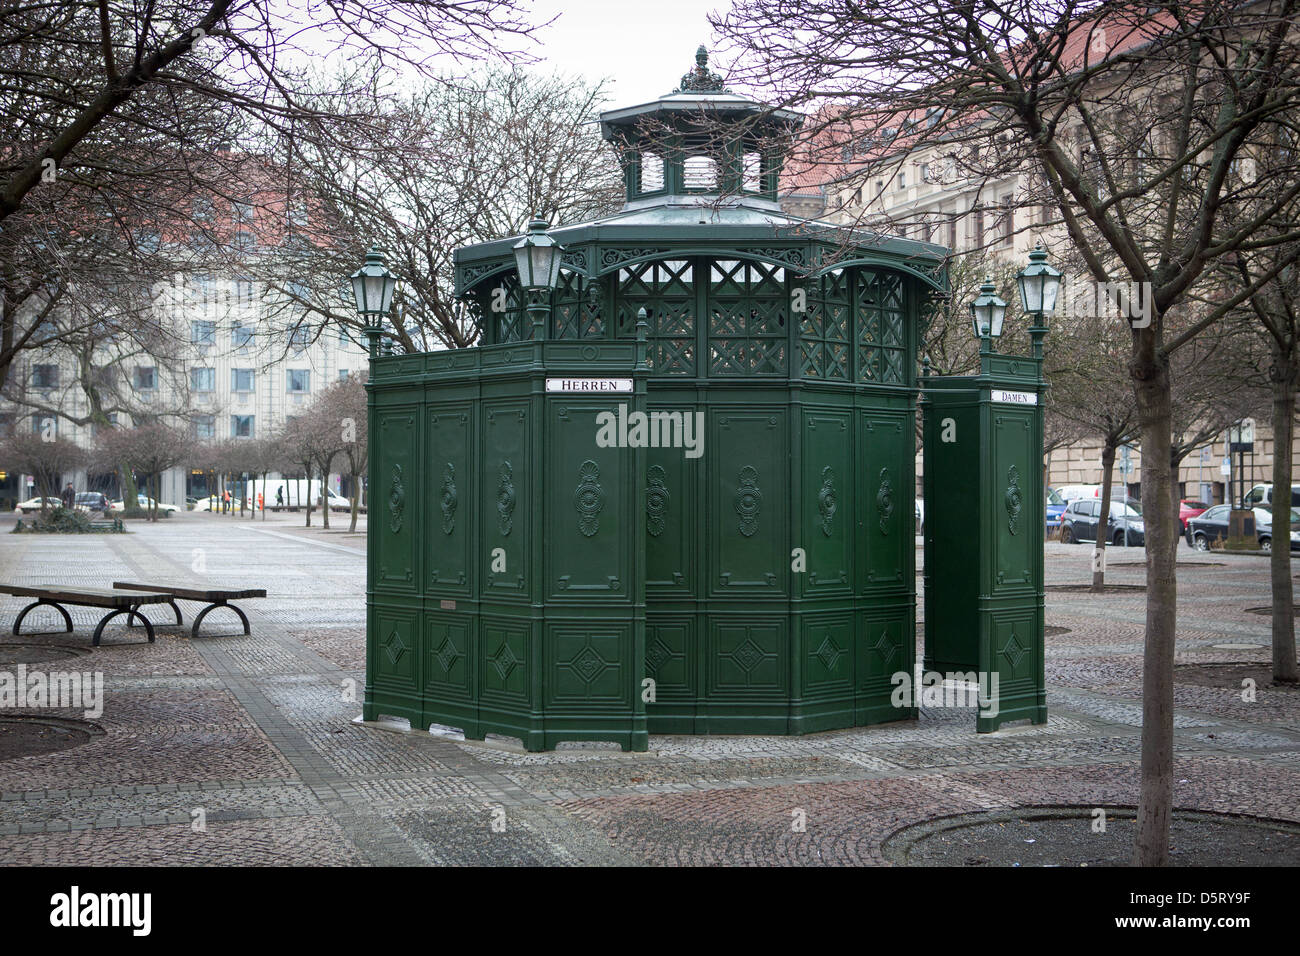 This old style public toilet has been completely renovated and contains modern facilities. - Stock Image